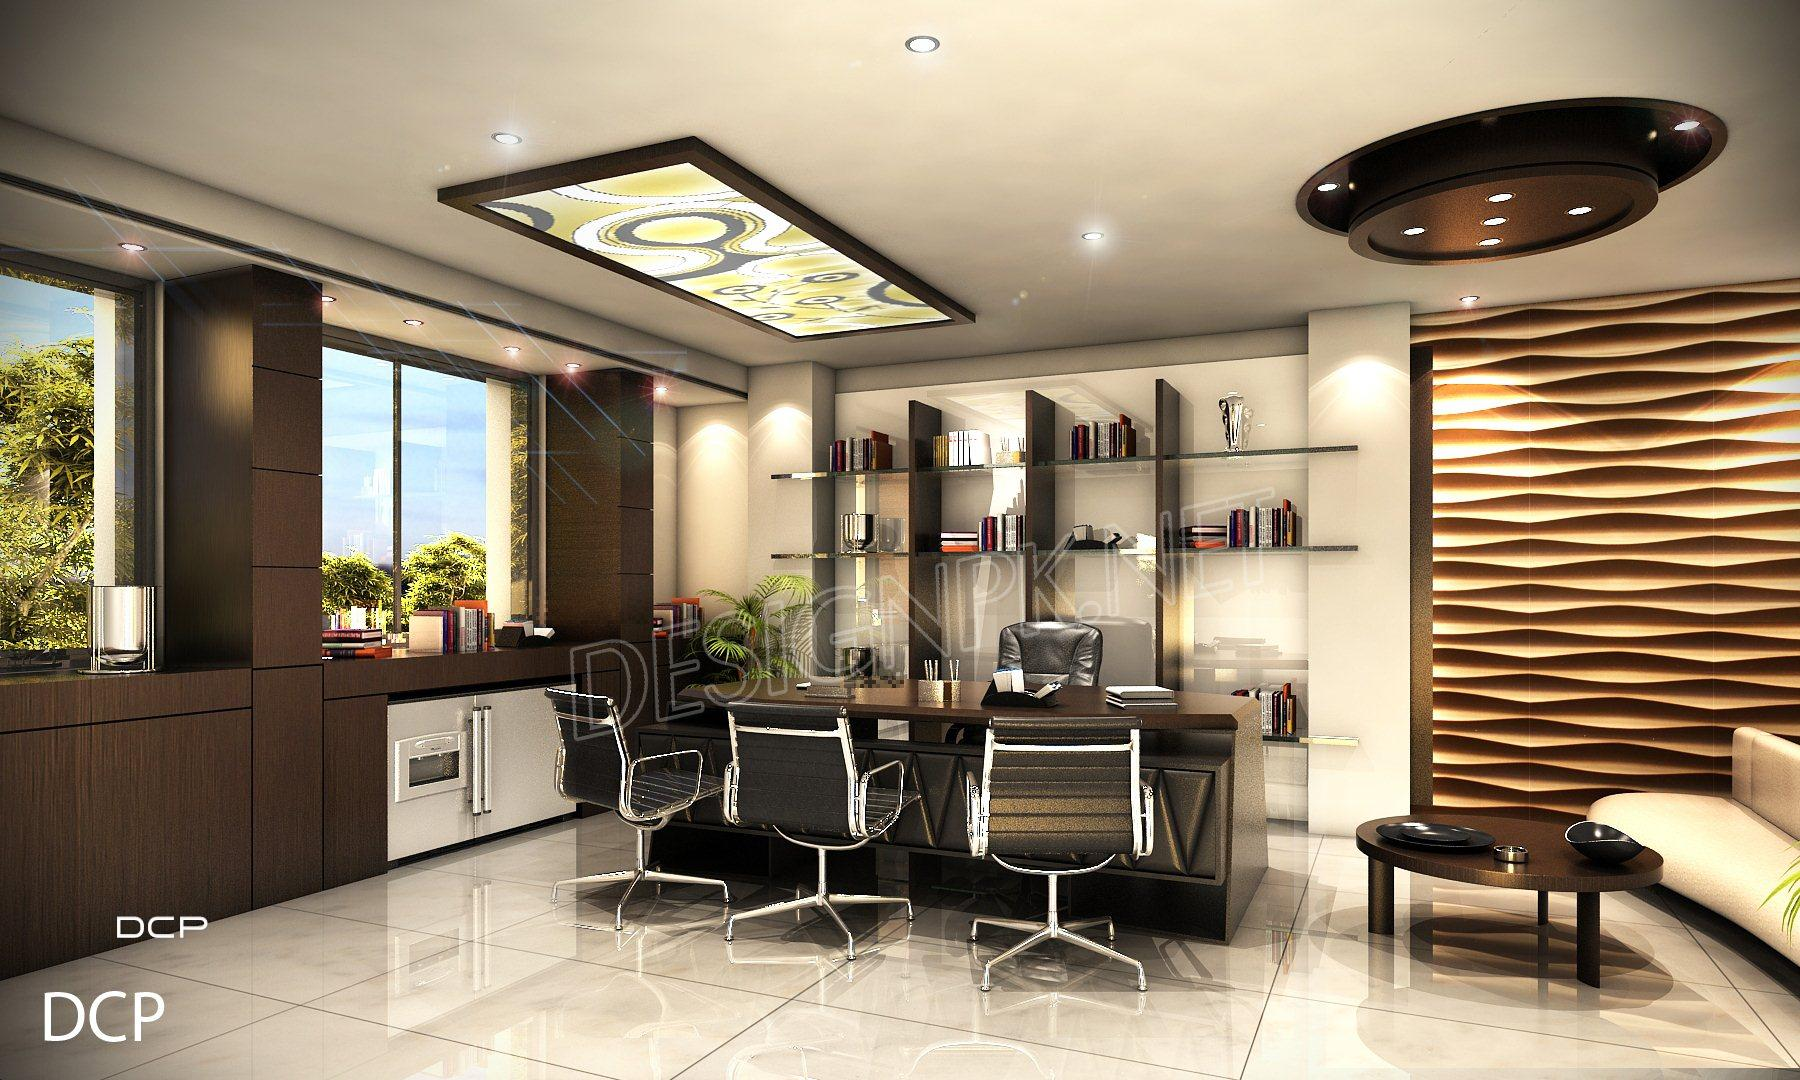 CEO Room Interior Design Pakistan